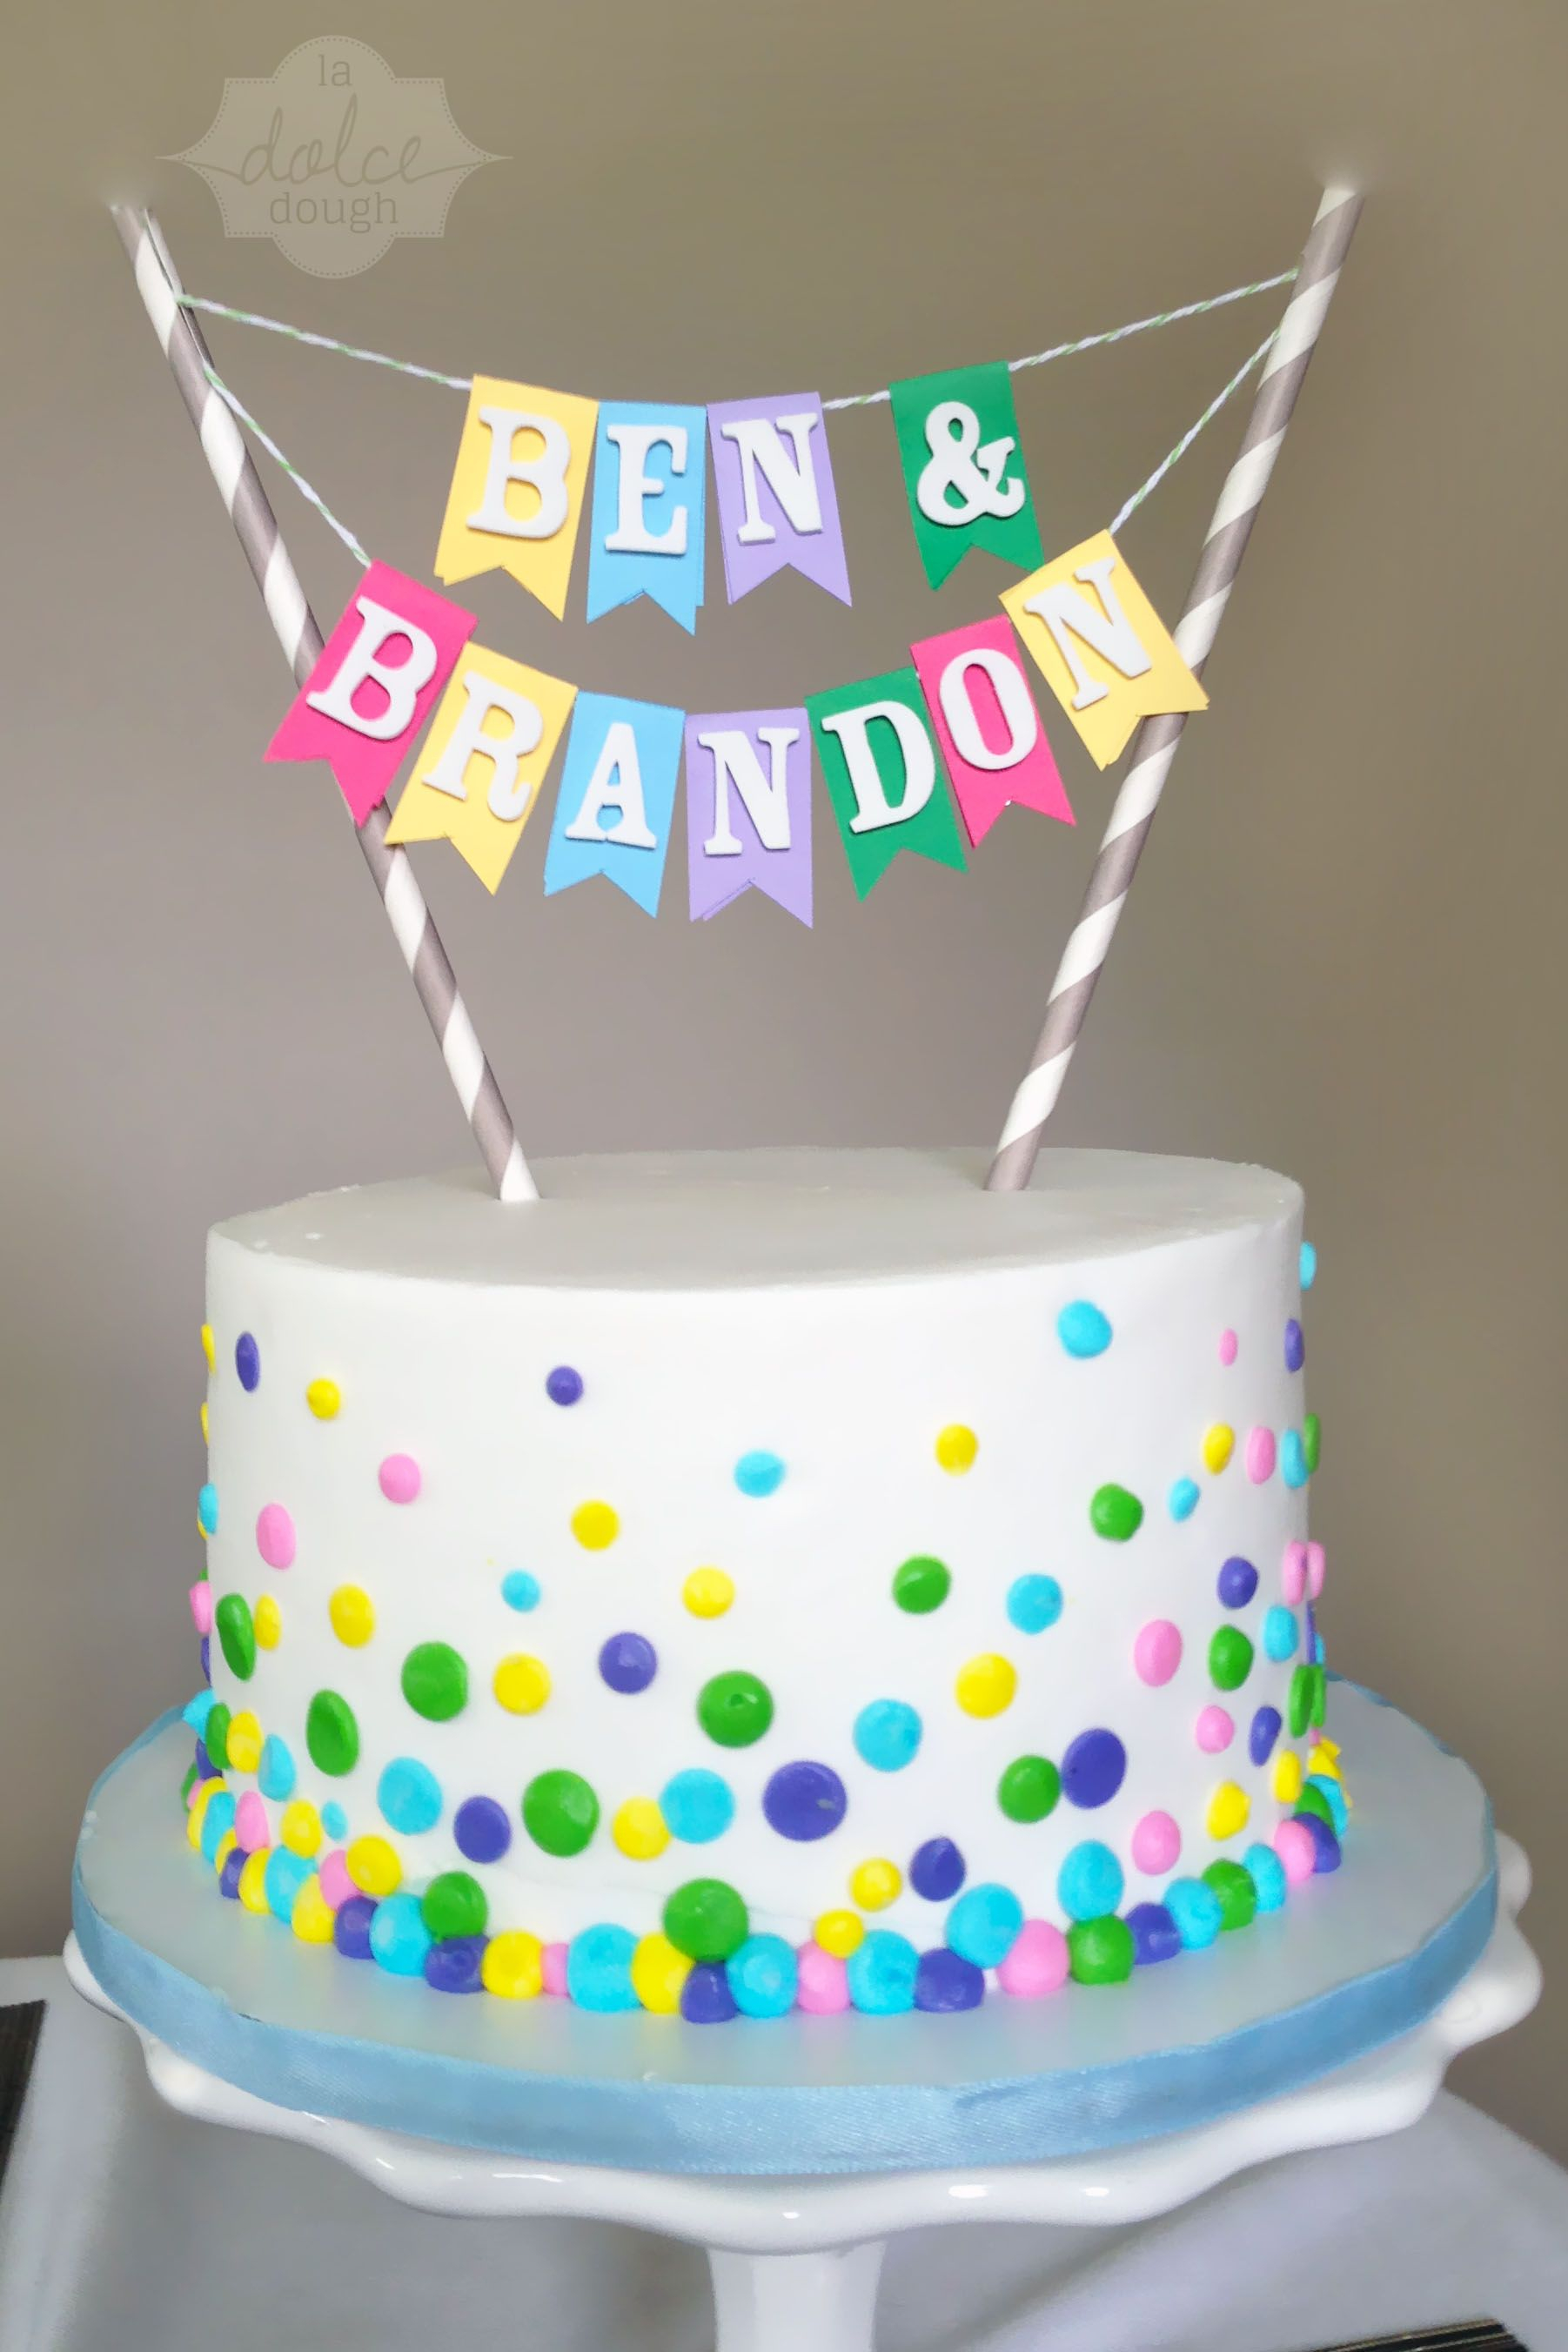 Twin Birthday Cakes Confetti Cake For A Twins Birthday Birthday Desserts Birthday